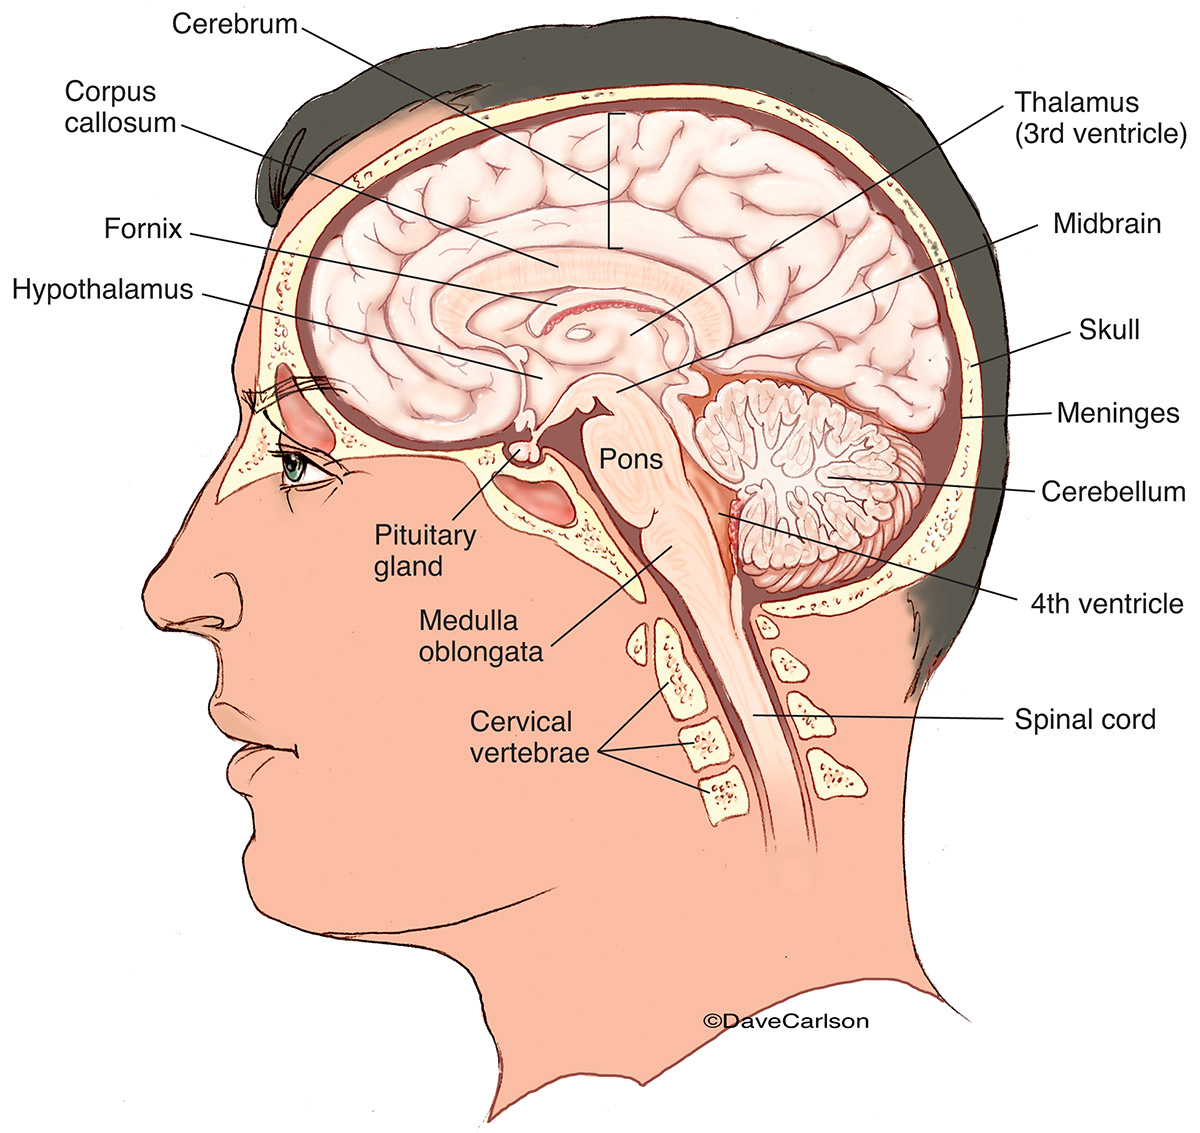 human brain, brain, midsagittal, cerebrum, cerebellum, brainstem, brain stem,  structures, illustration, photo